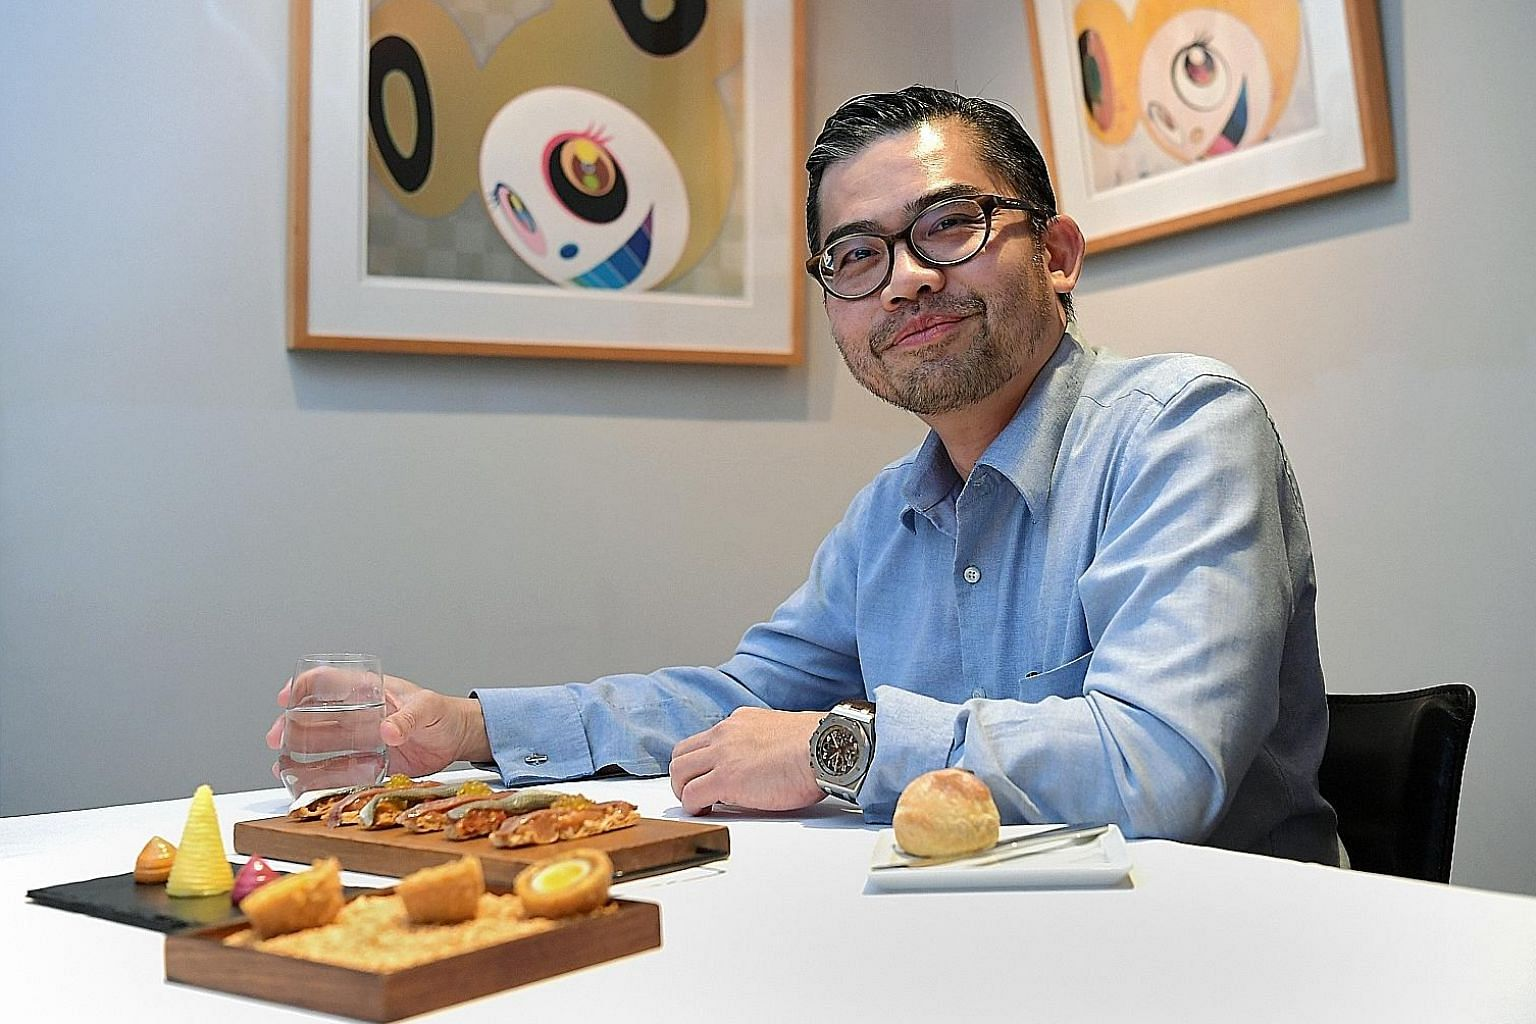 Consultant surgeon Melvin Look at one-Michelin-starred Iggy's at the Hilton Singapore, one of his favourite restaurants.